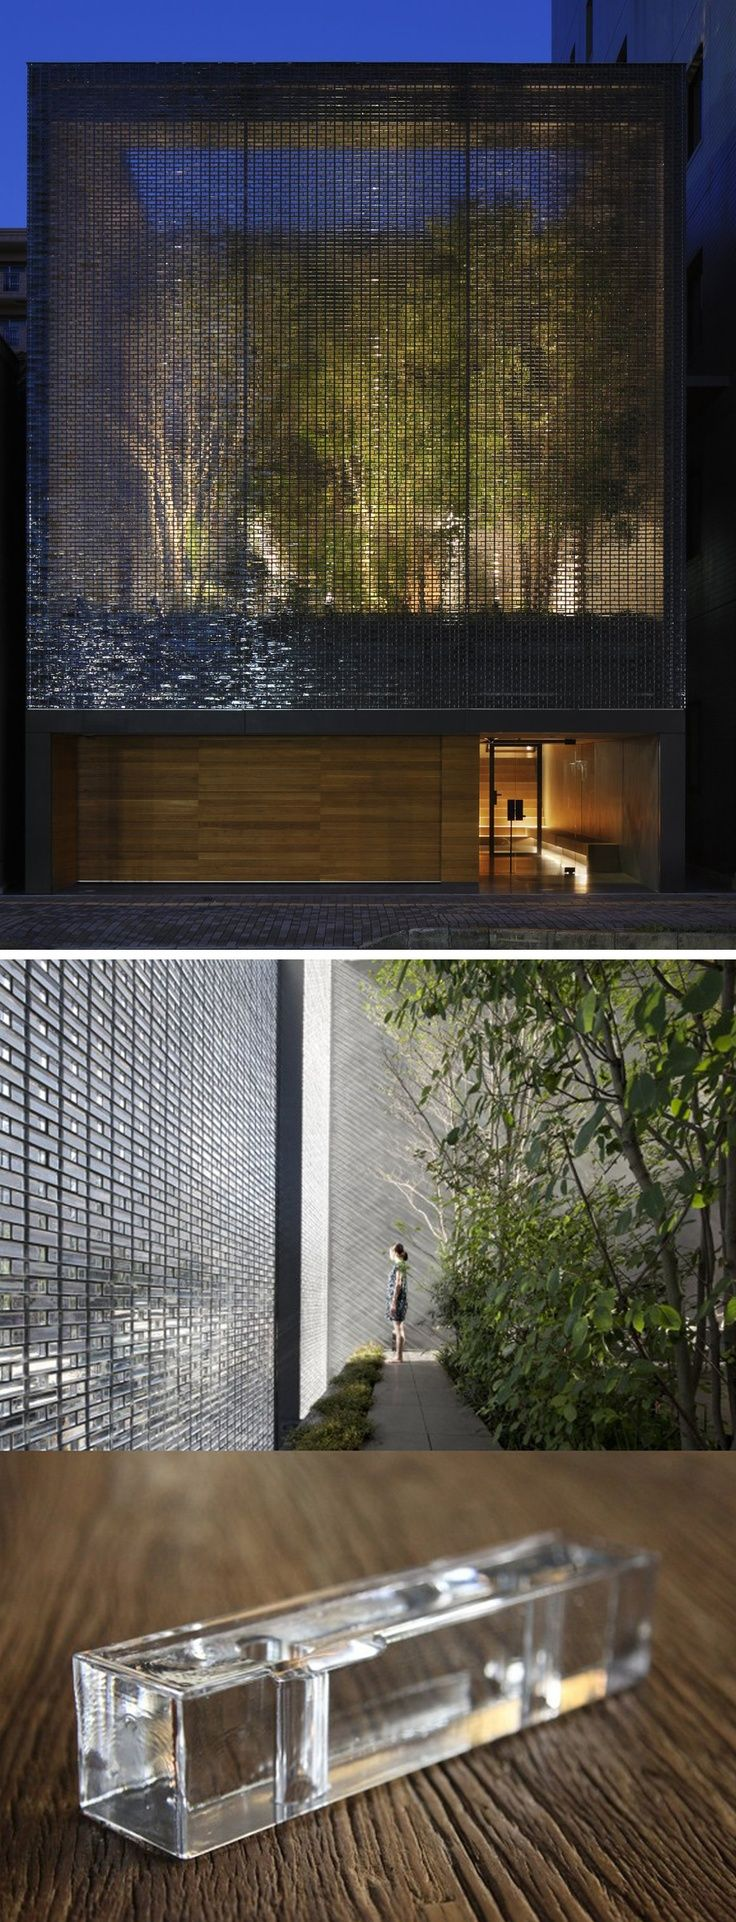 Optical Glass House By Nap Architects: Nakamura's Optical Glass House Is Composed Of Roughly 6000